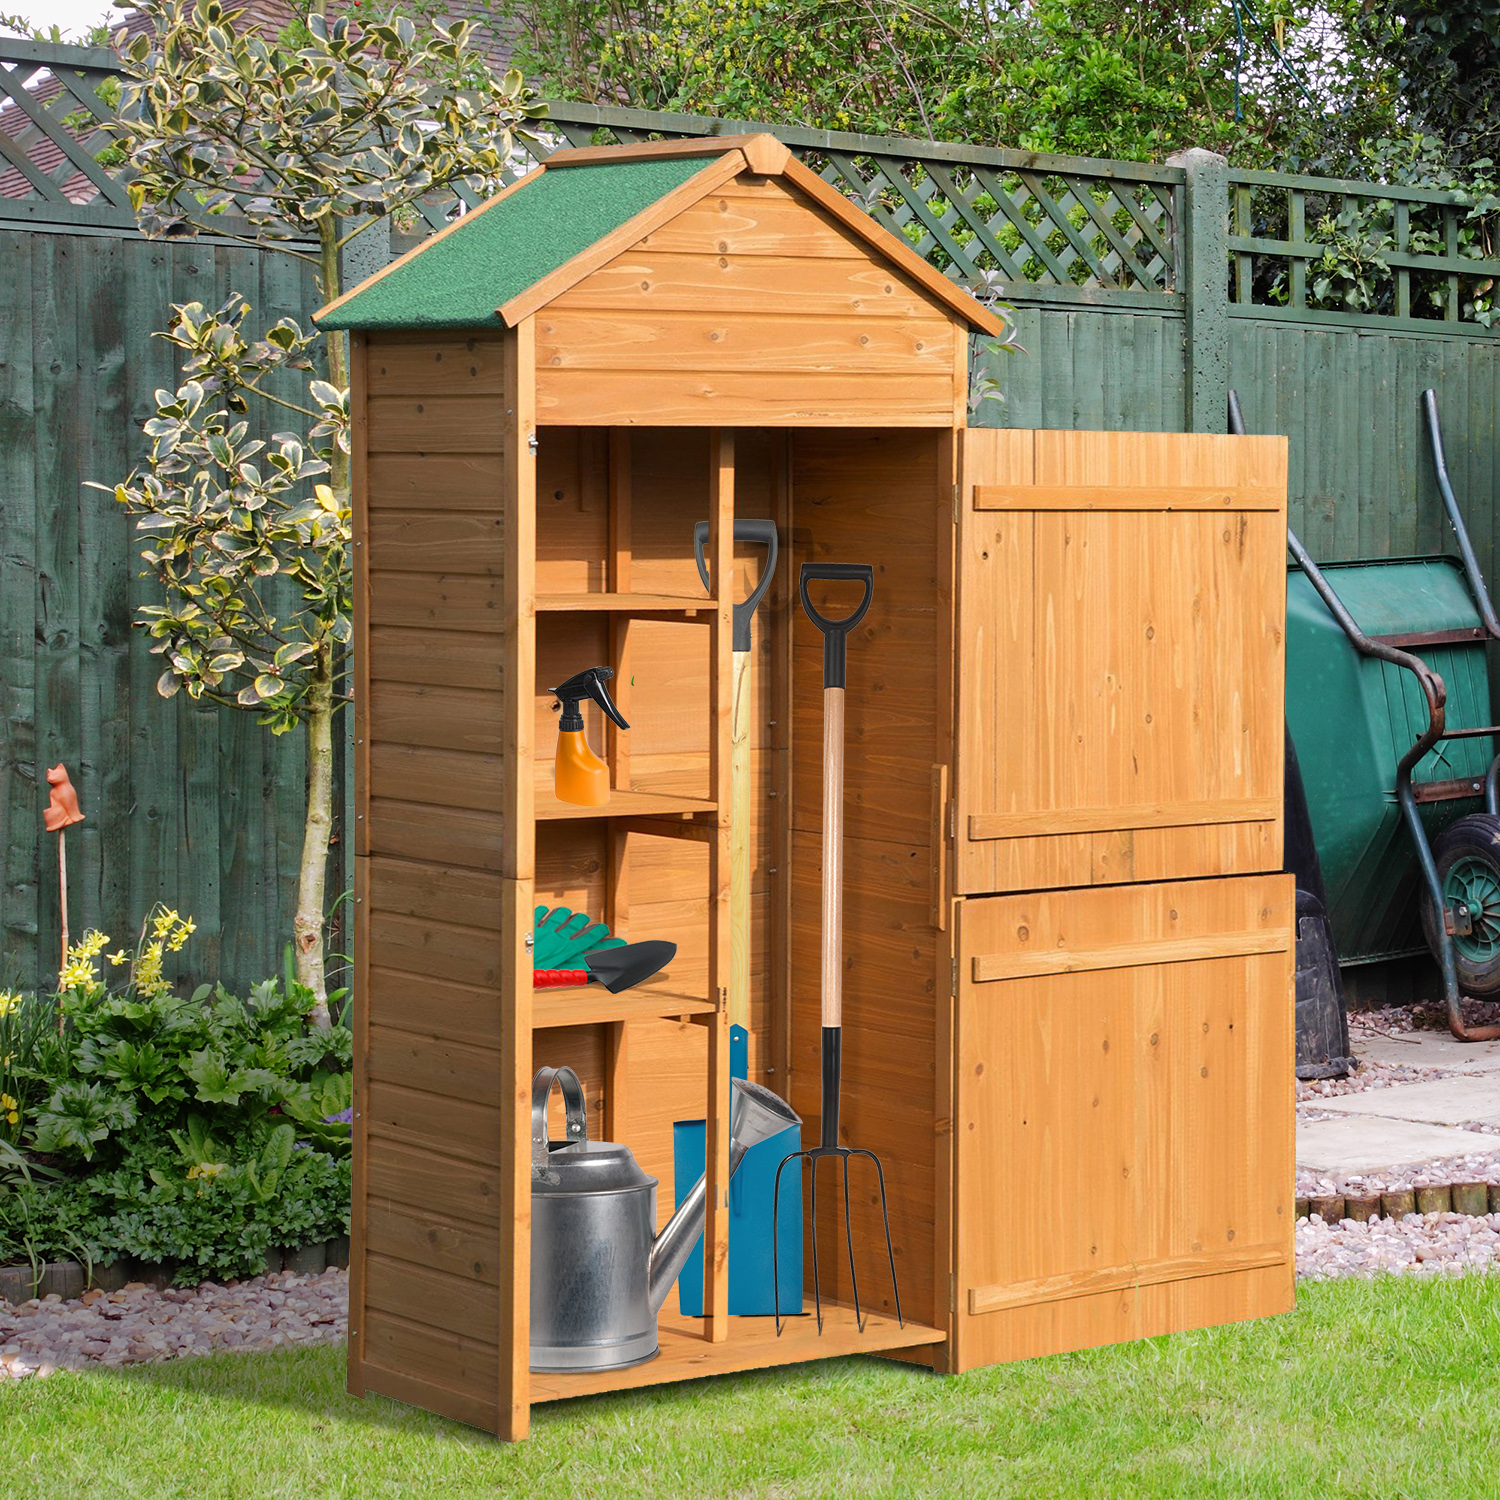 garden lean reviewed sheds home shed reviews buying wooden green guides